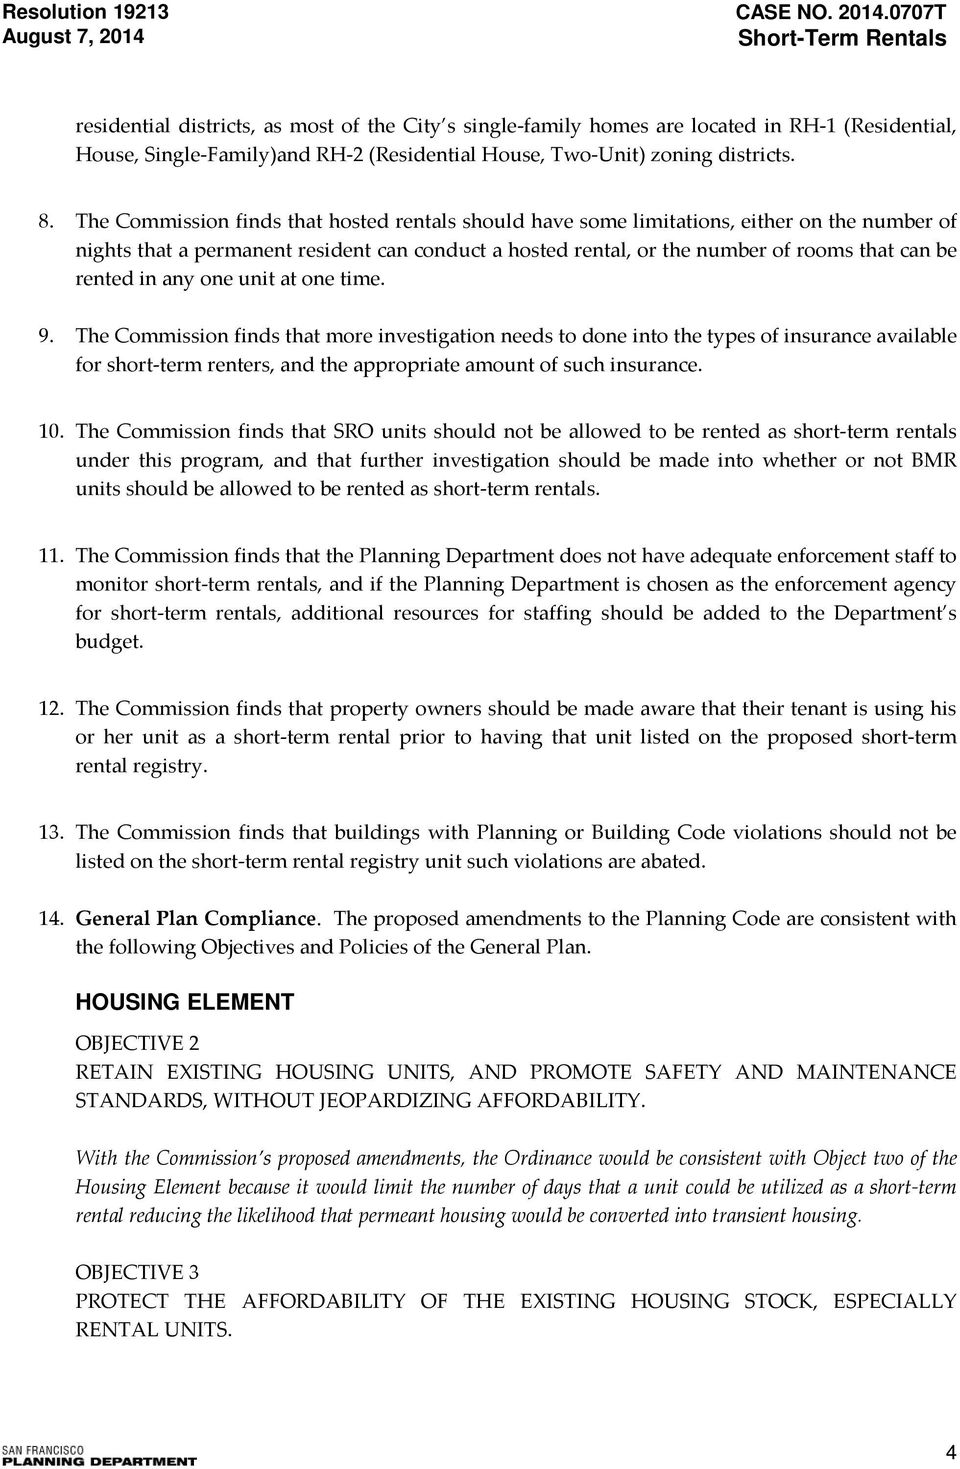 The Commission finds that hosted rentals should have some limitations, either on the number of nights that a permanent resident can conduct a hosted rental, or the number of rooms that can be rented